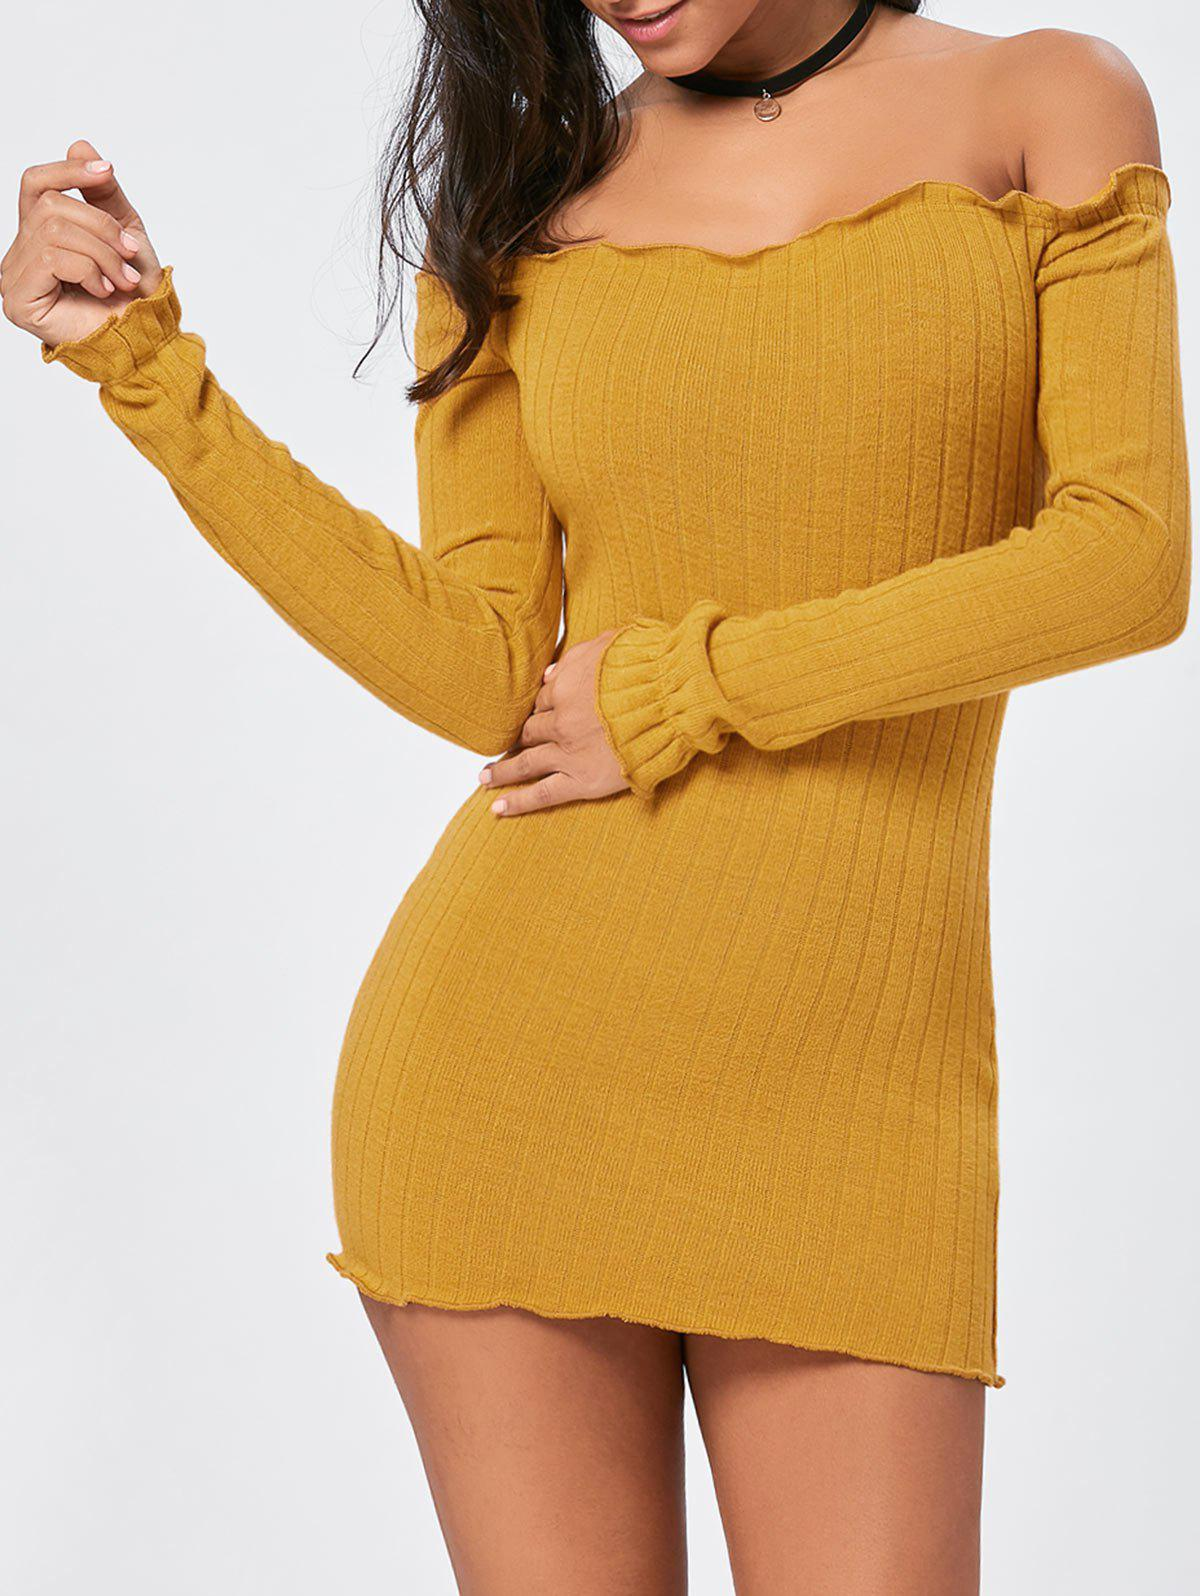 New Off The Shoulder Mini Sweater Dress